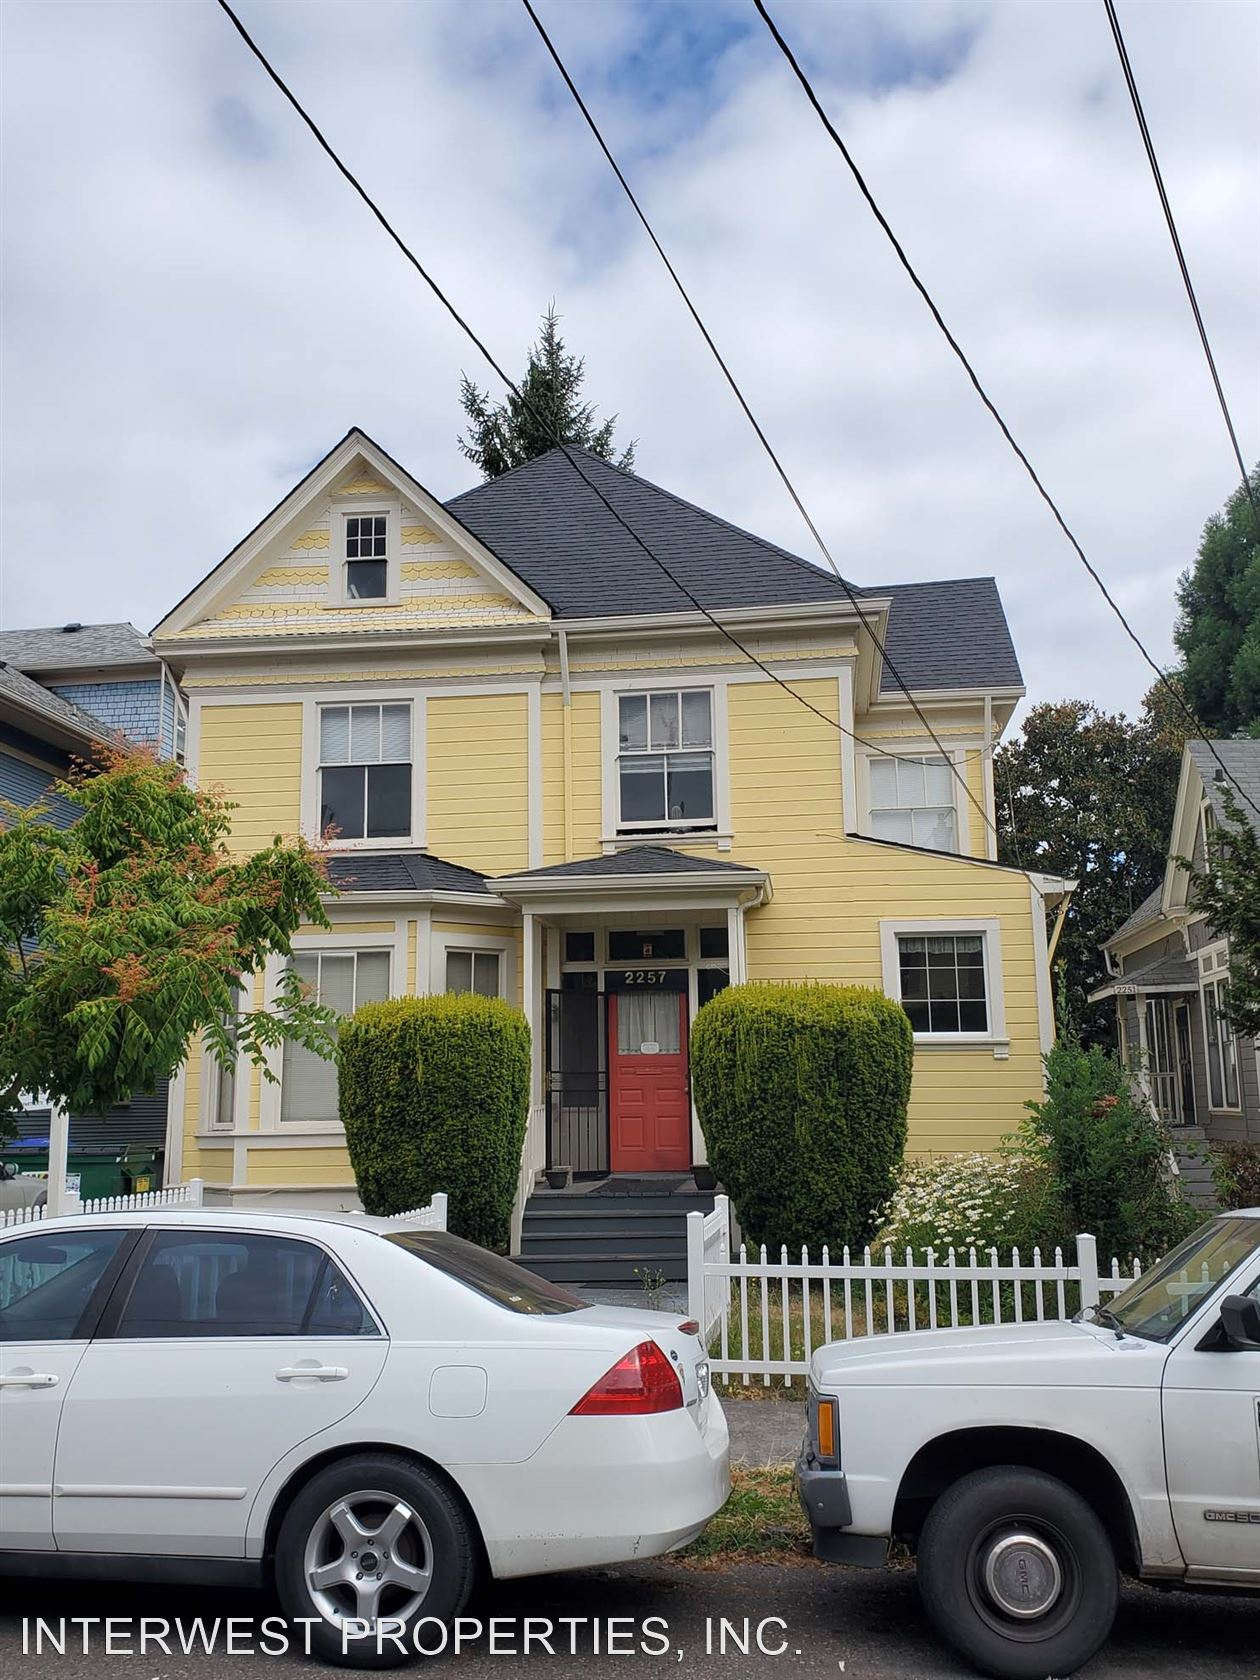 ANTHONY APTS 2257 NW HOYT ST. - 800USD / month